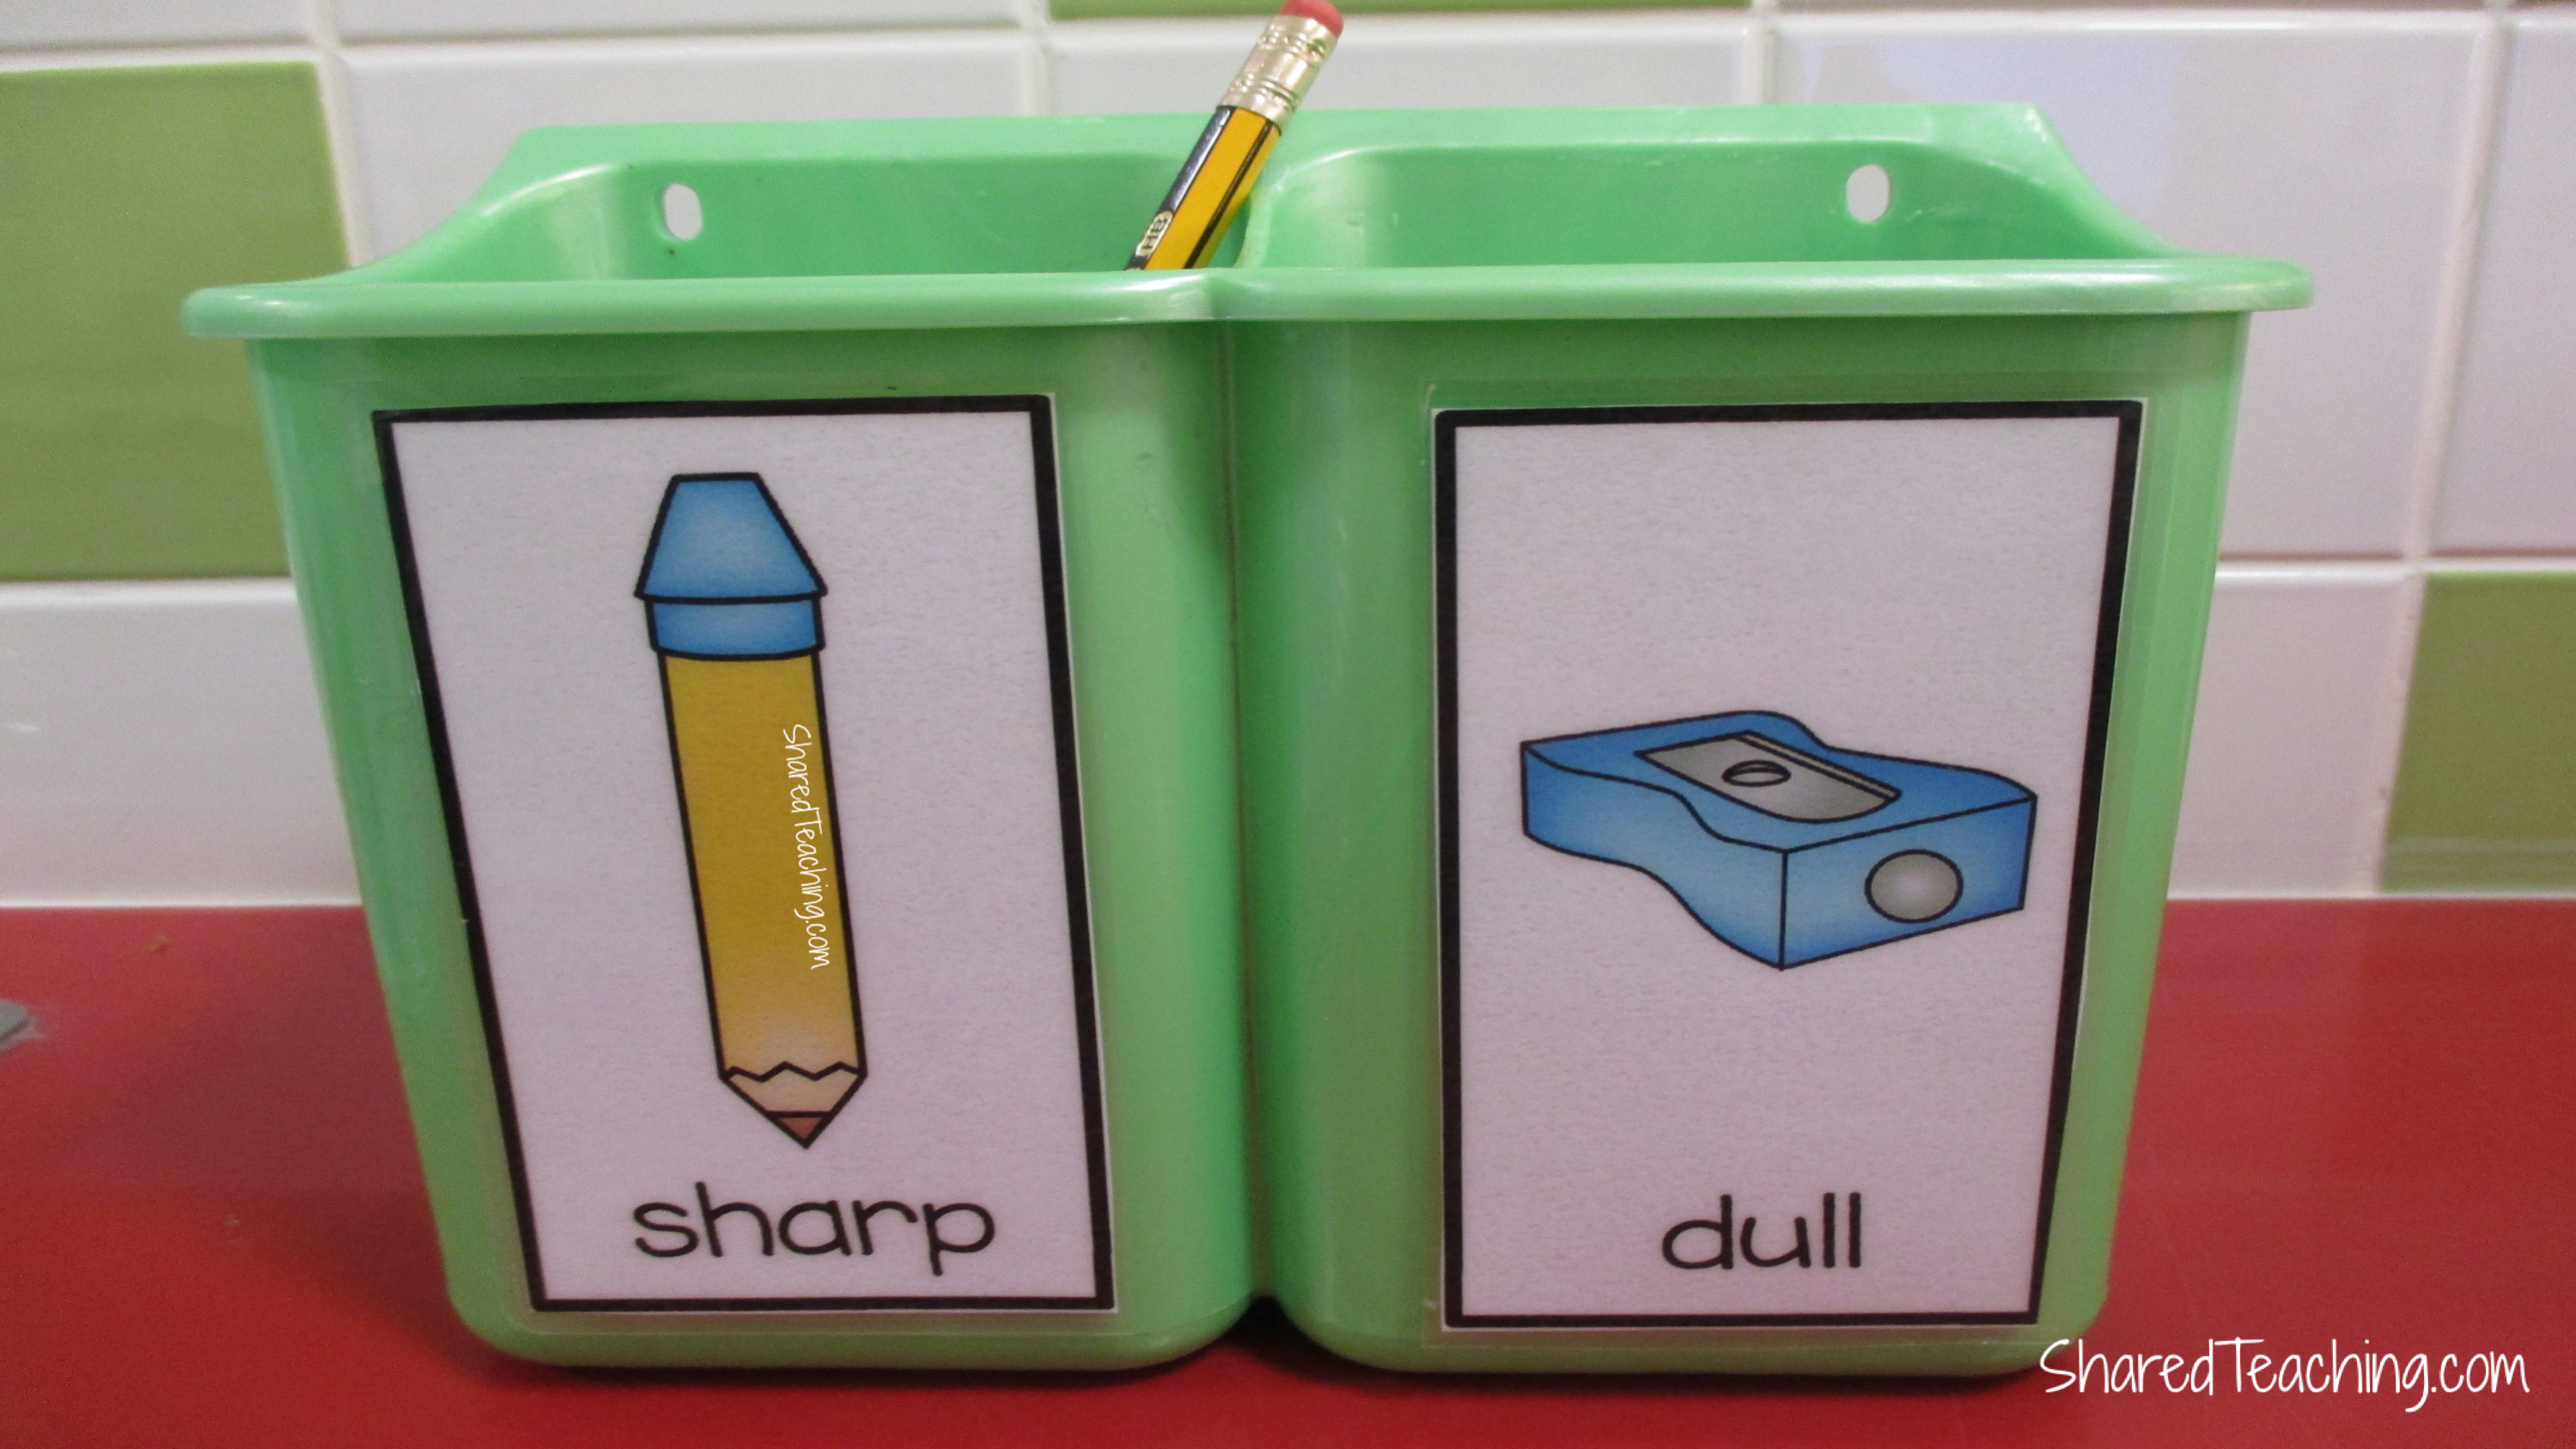 Having a designated routine for supplies is crucial for not losing your mind in the classroom. Learn more on the Shared Teaching post for Year End Teacher Reflections for a Successful Next Year.